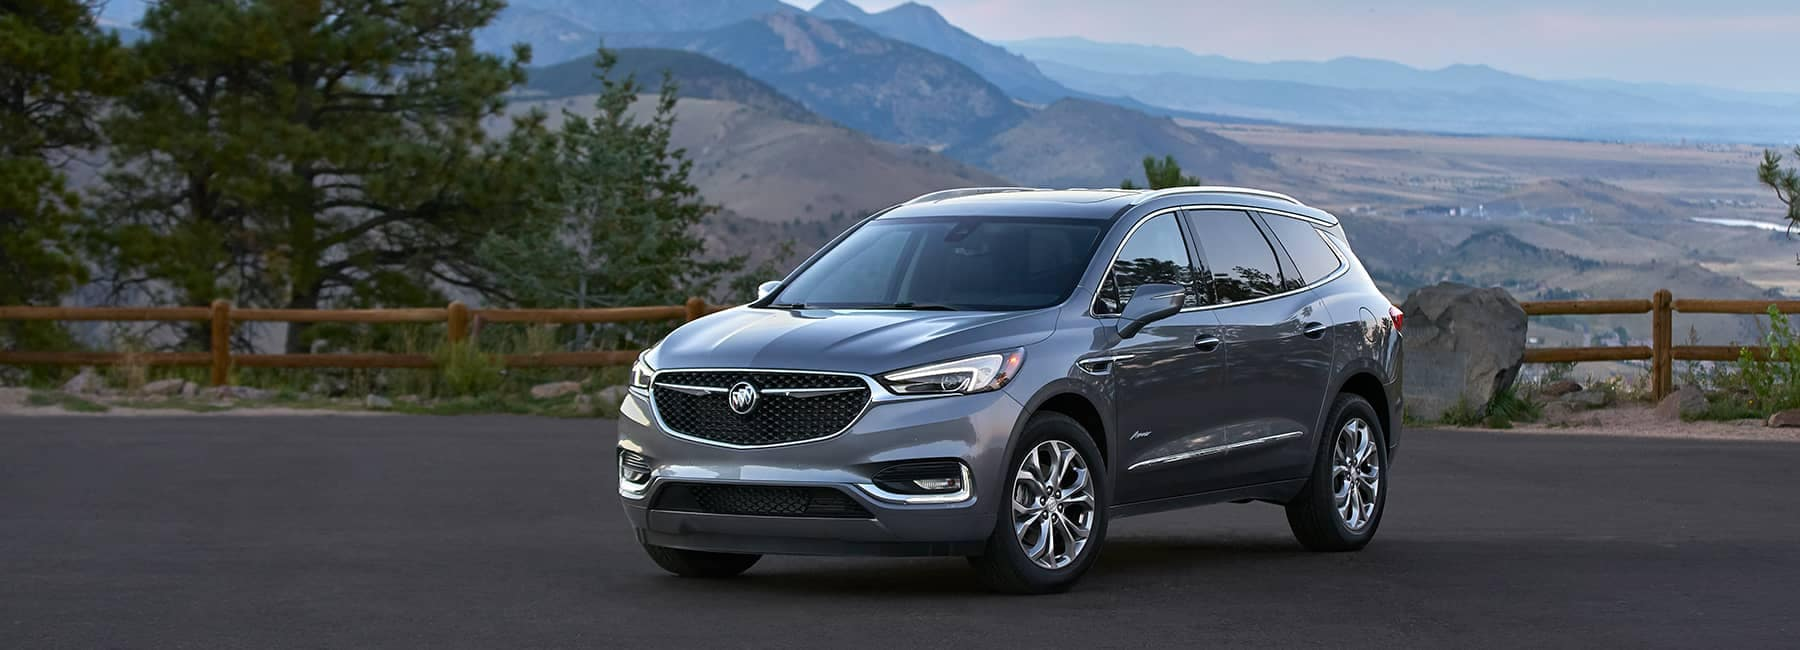 Grey 2020 Buick Enclave on a Mountain Overpass